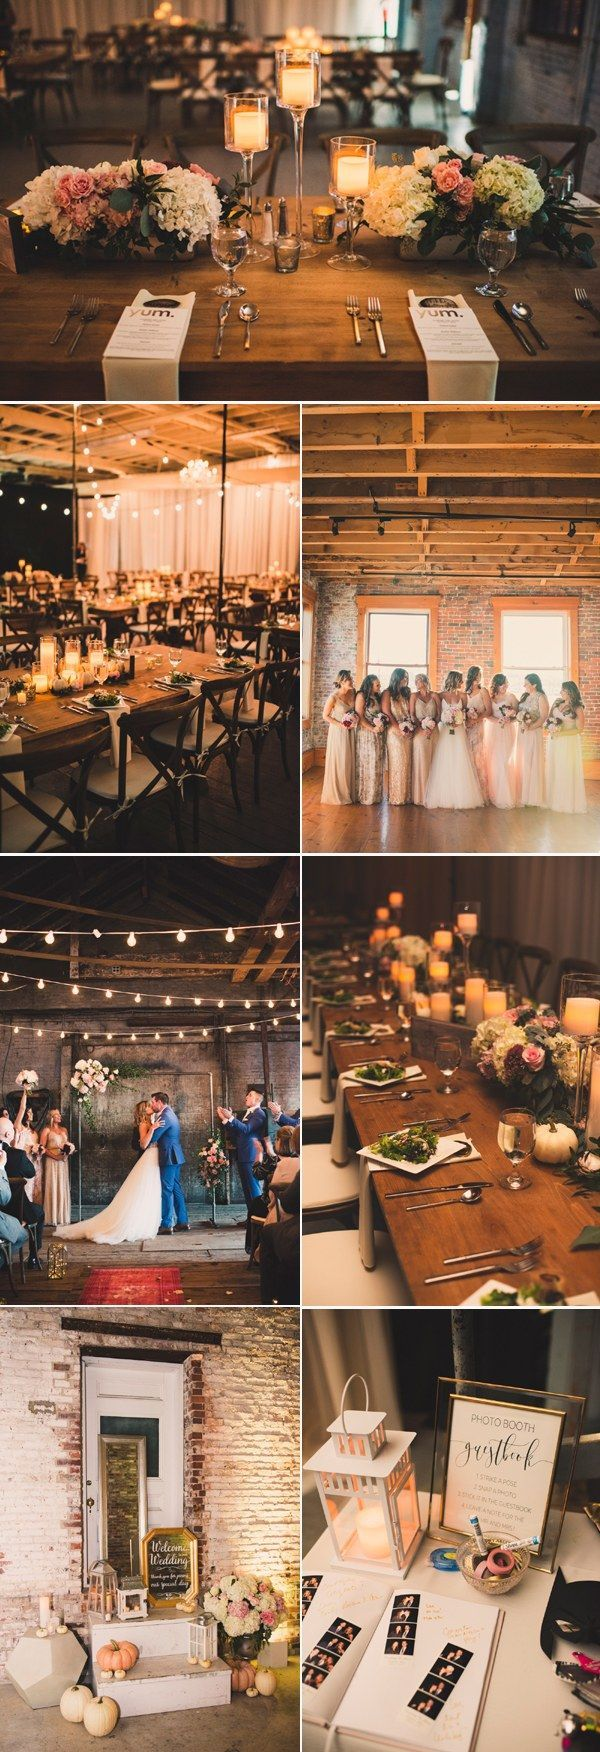 rustic barn industrial wedding theme ideas / http://www.deerpearlflowers.com/industrial-wedding-theme-ideas/